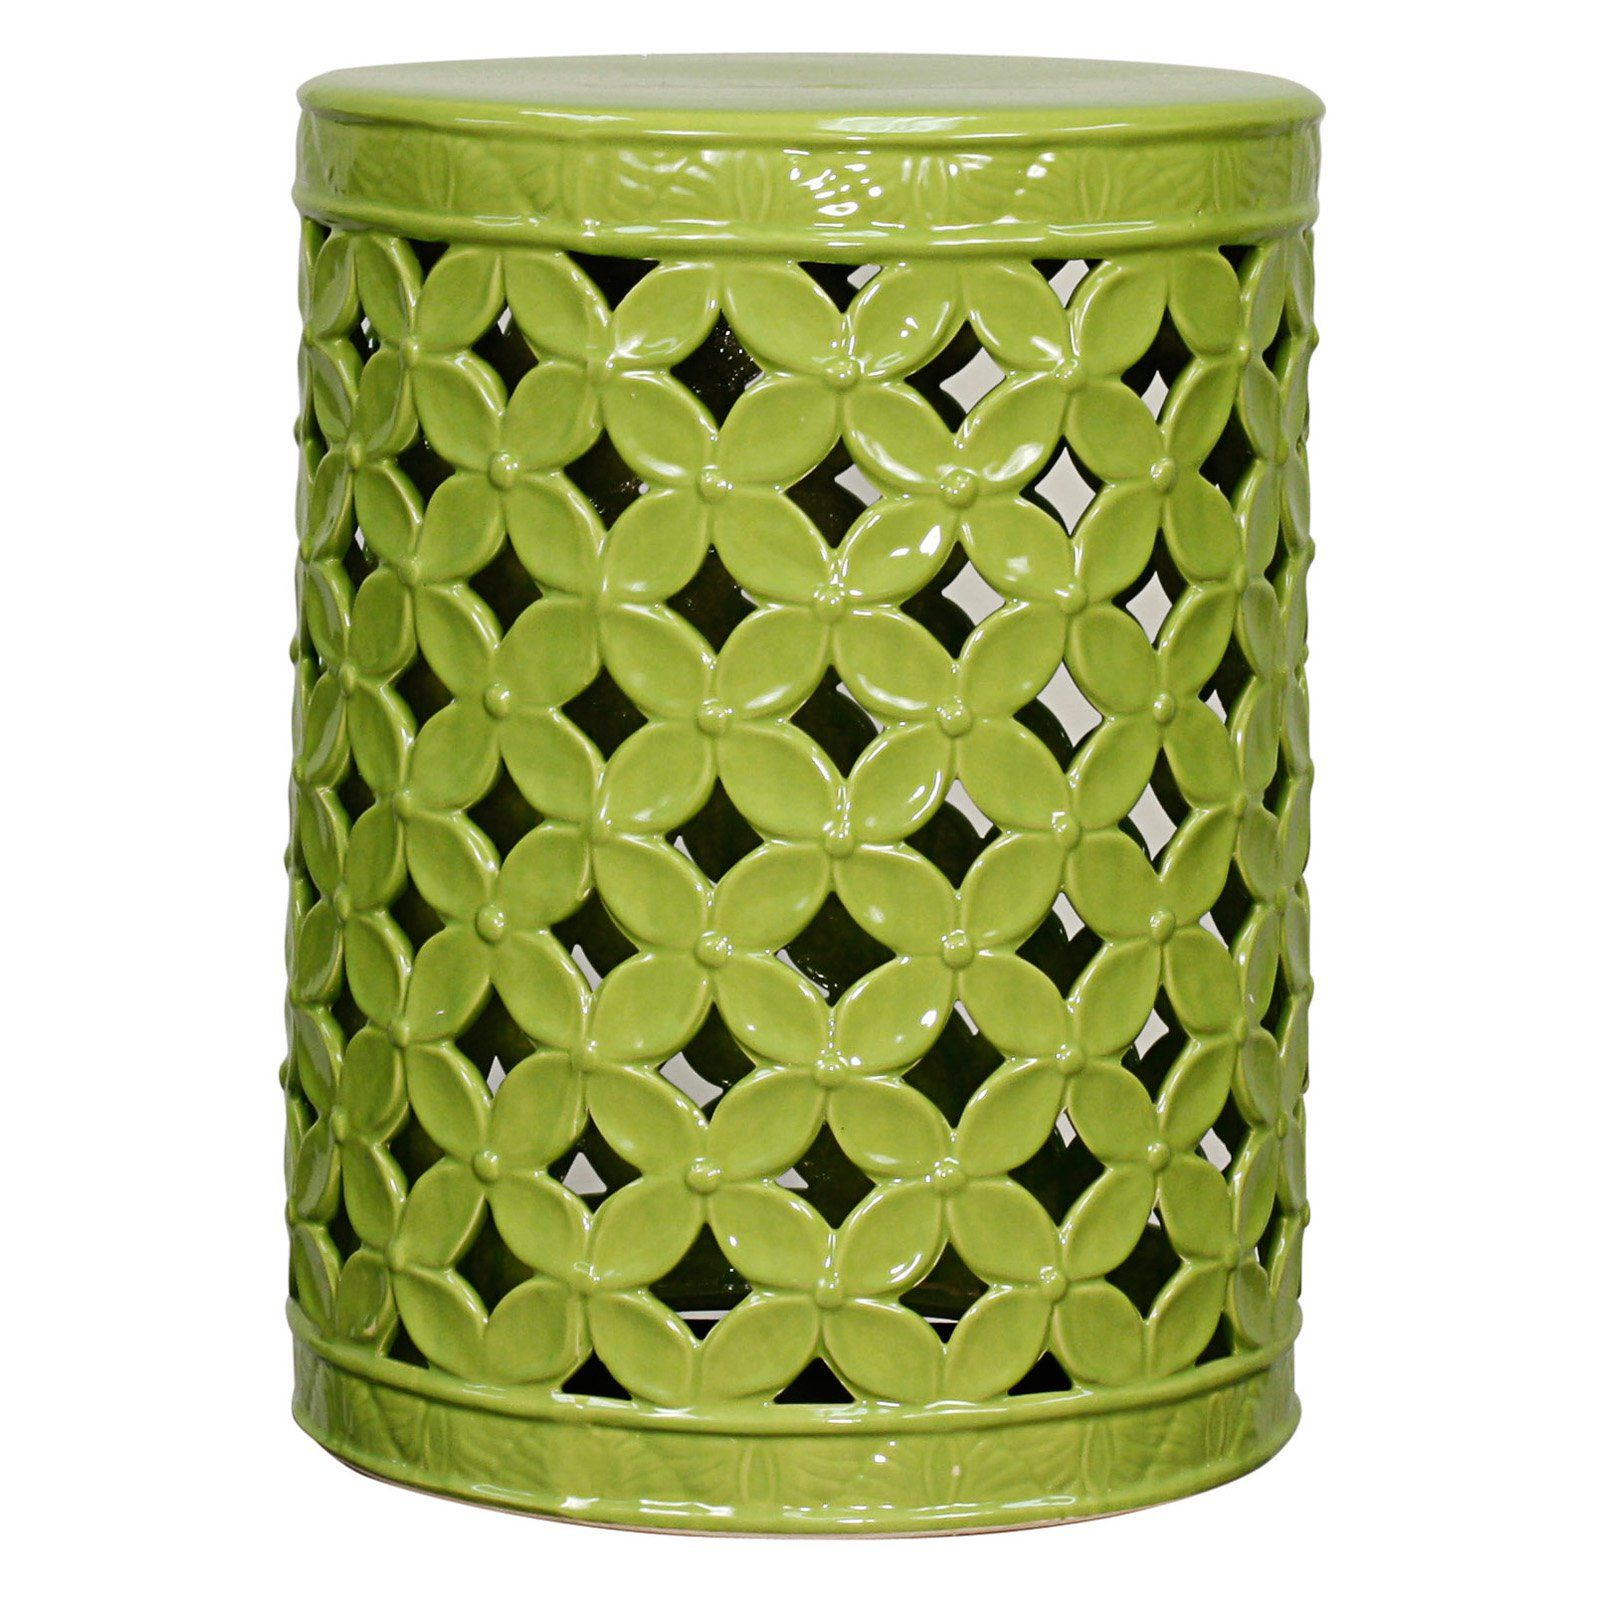 Swell Outdoor New Pacific Direct Inc Lattice Leaves Garden Stool Ibusinesslaw Wood Chair Design Ideas Ibusinesslaworg